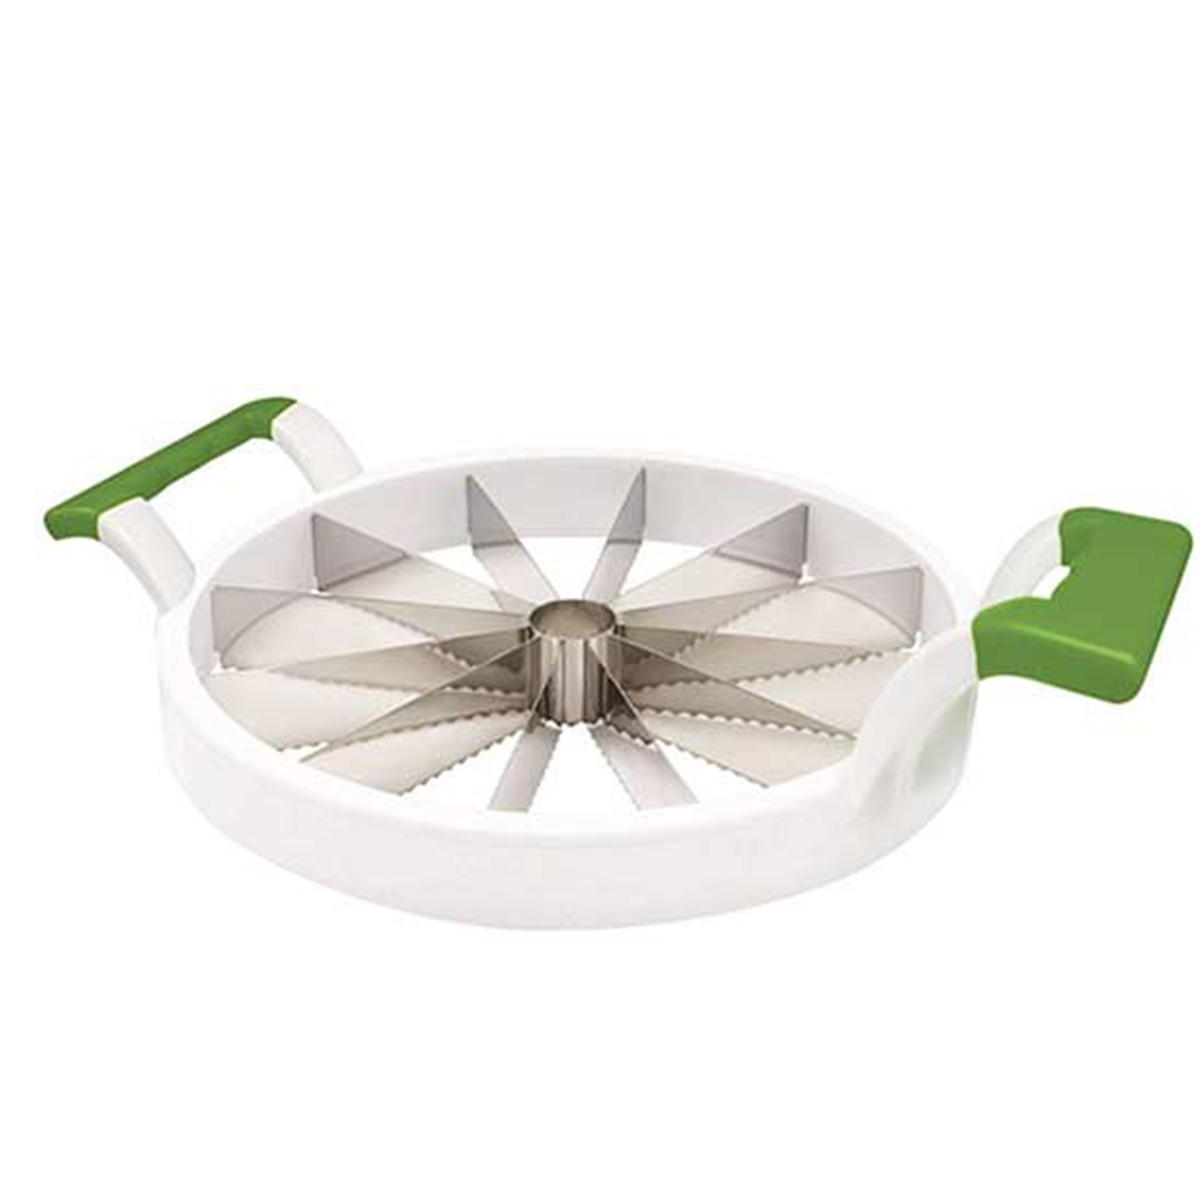 White watermelon slicer with green handles photo